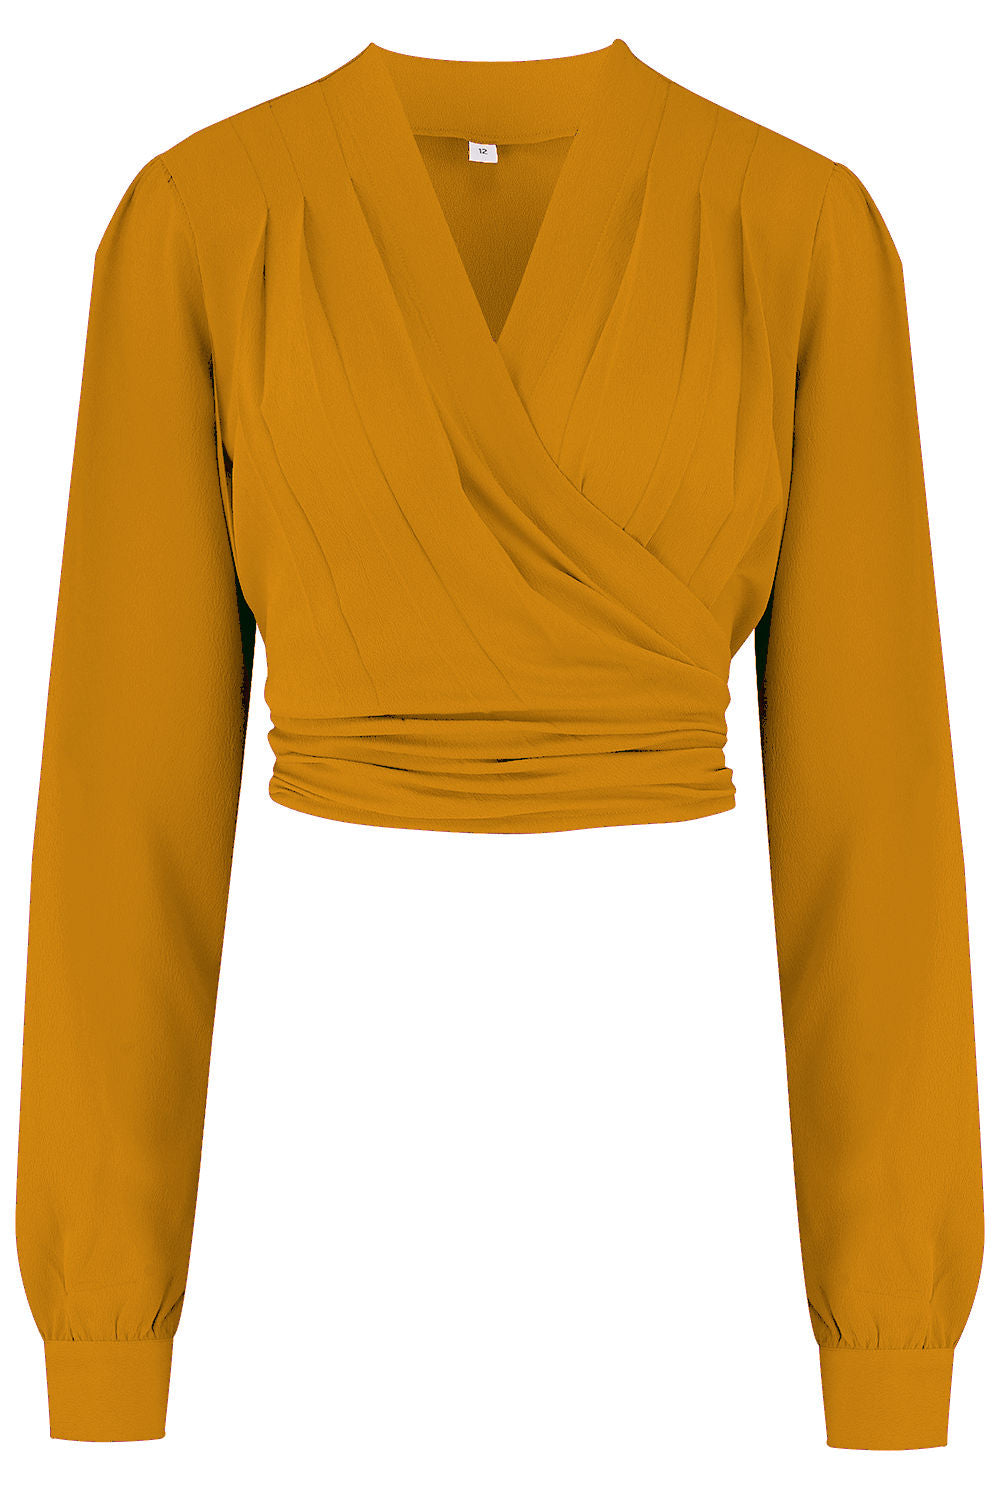 "Rock n Romance The ""Darla"" Long Sleeve Wrap Blouse in Mustard, True Vintage Style - RocknRomance Clothing"